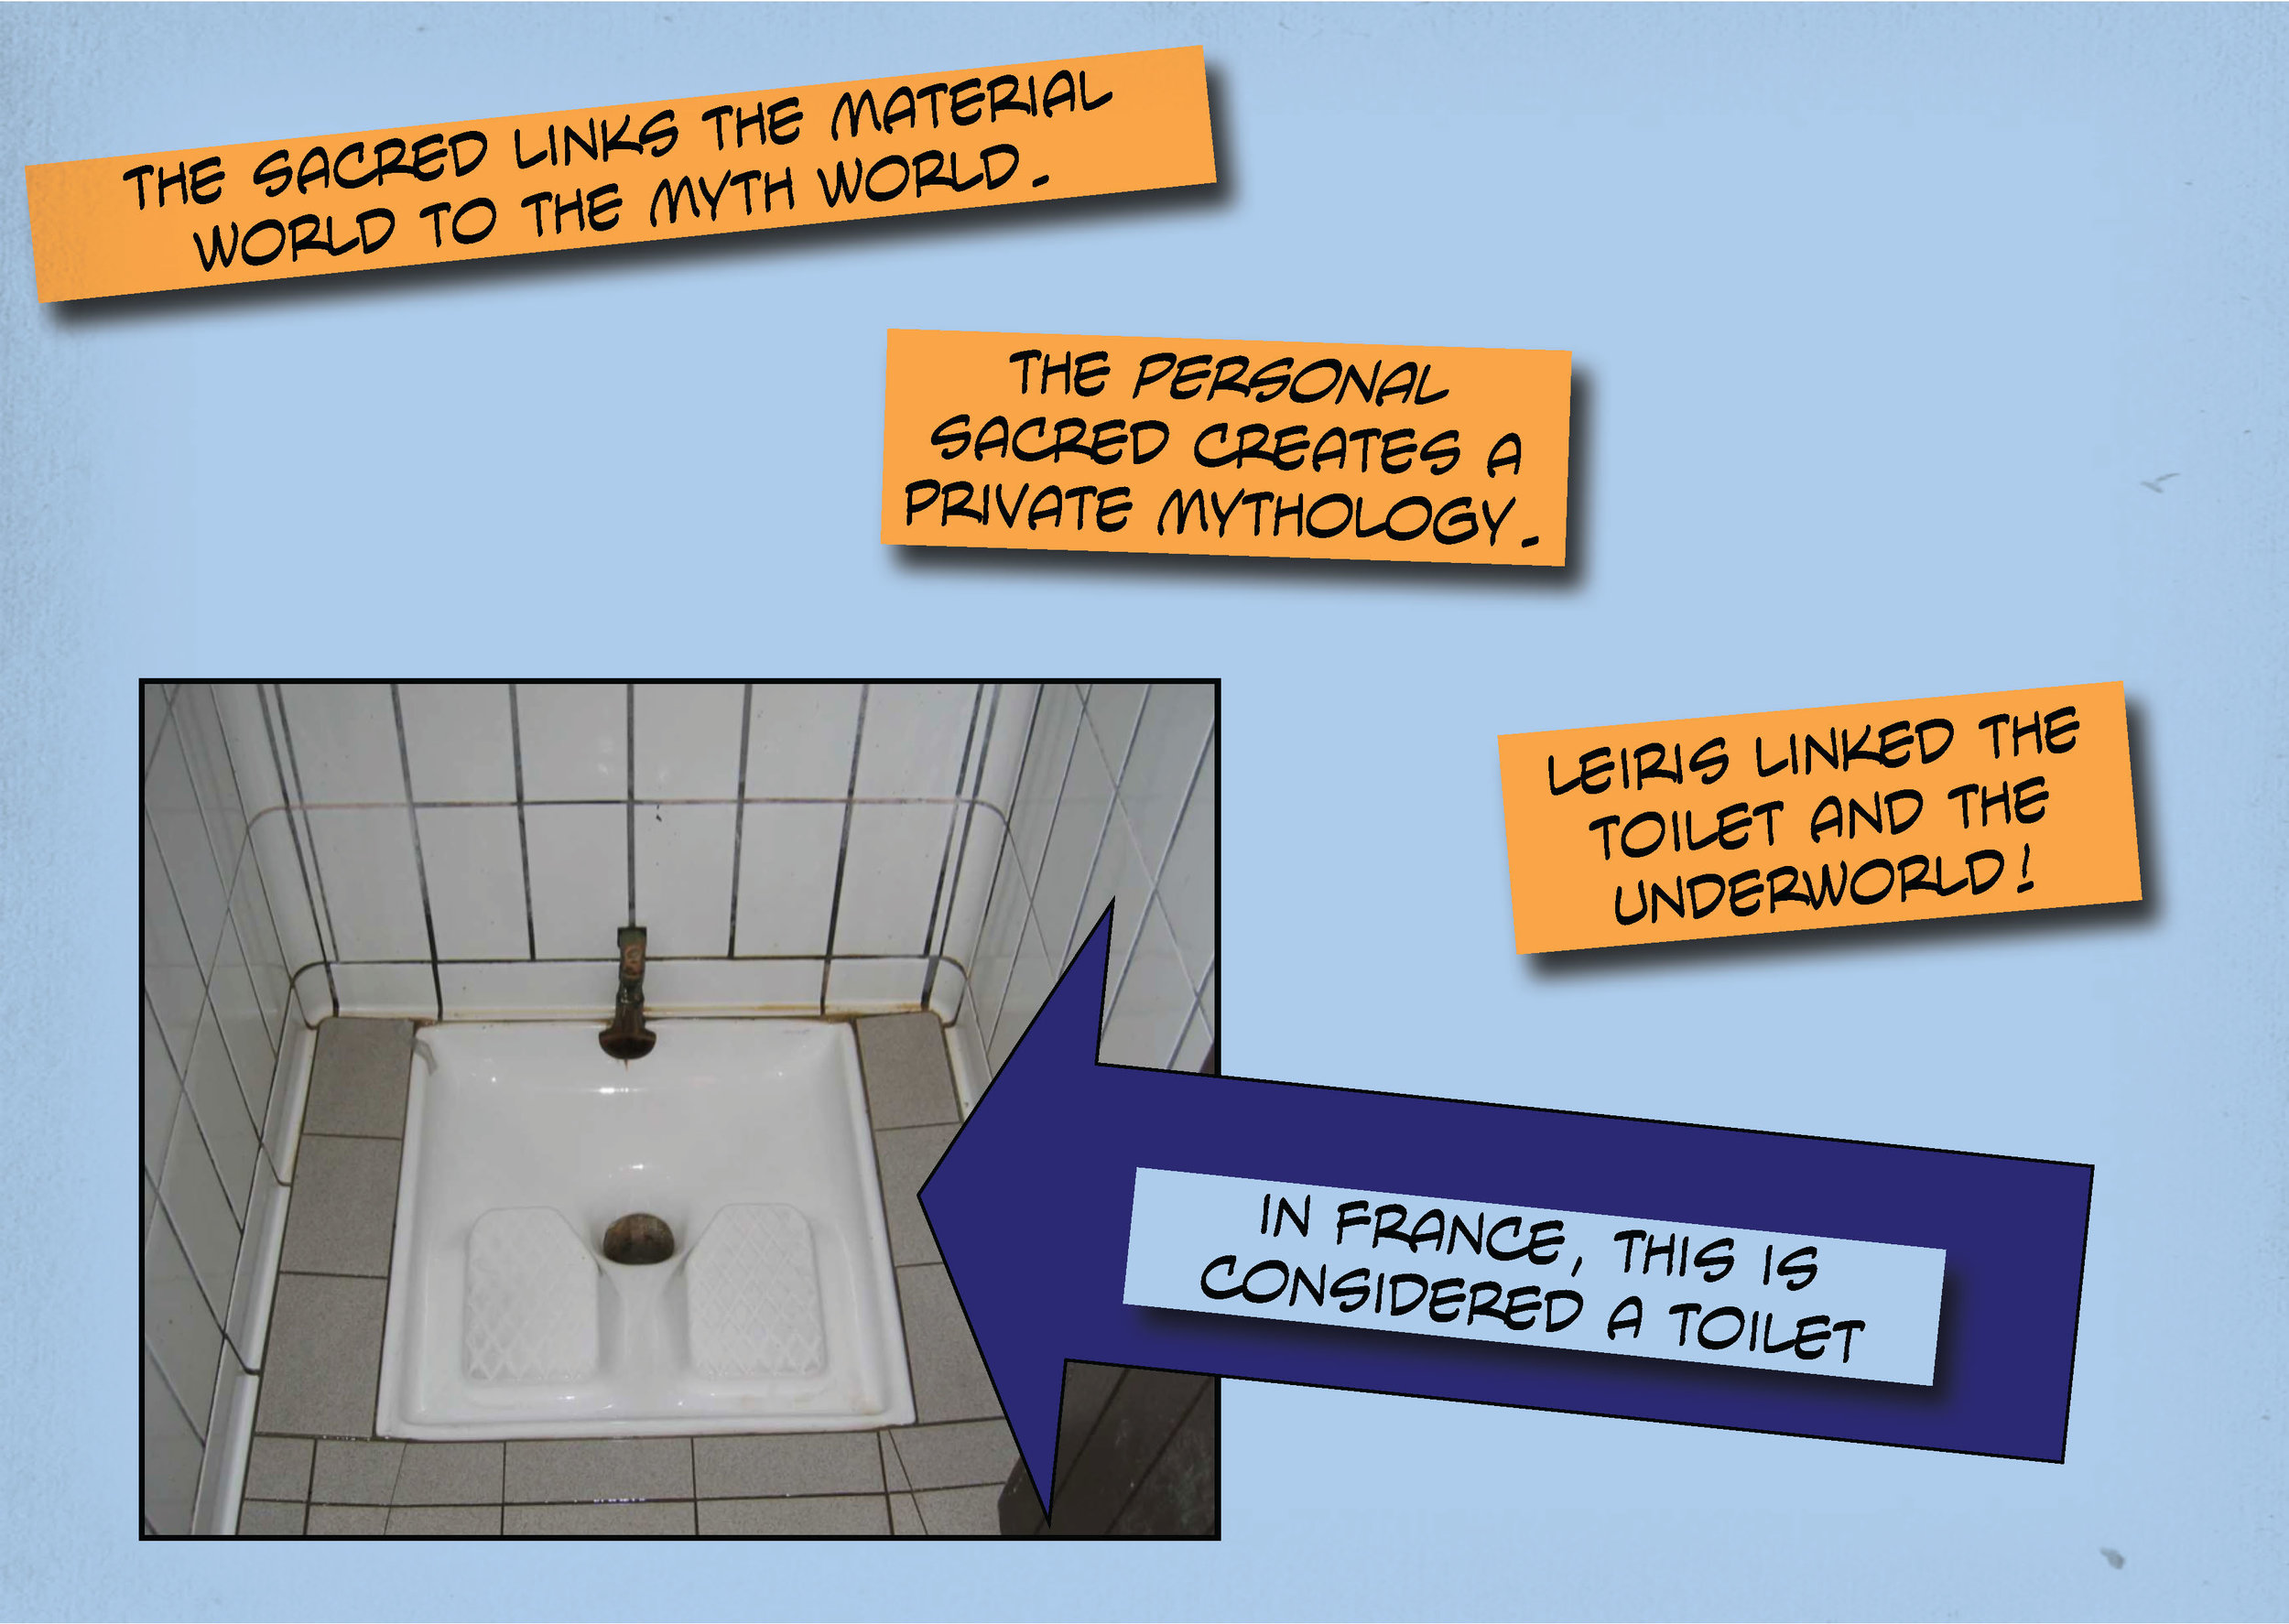 Repulsive Monuments Comic Page_16.jpg